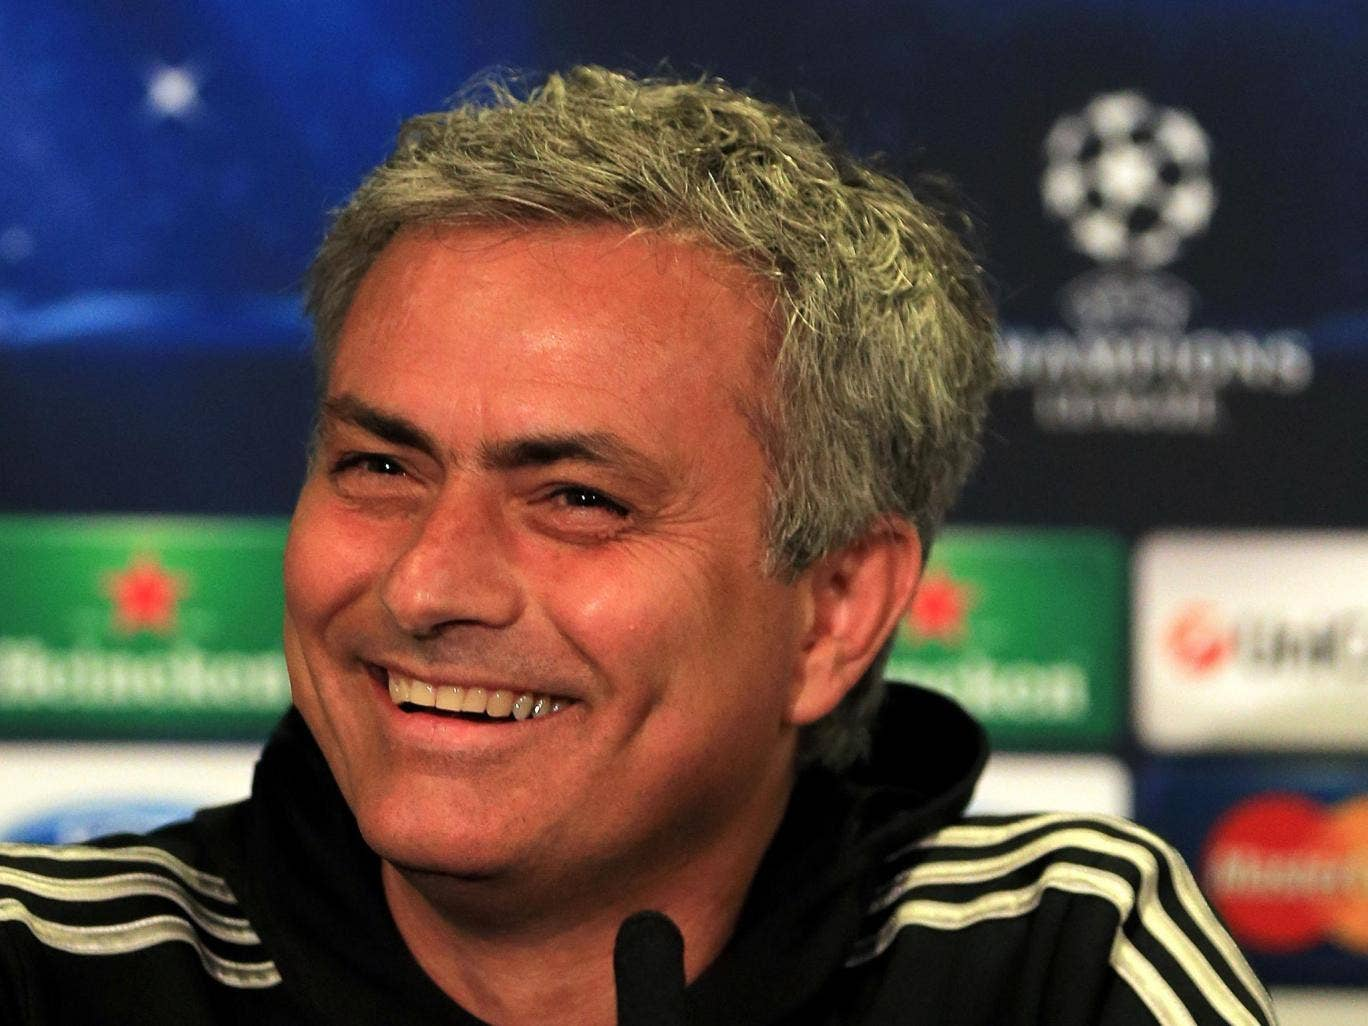 Chelsea manager Jose Mourinho has said that his Chelsea team could out-score Paris Saint-Germain and reach the Champions League semi-finals